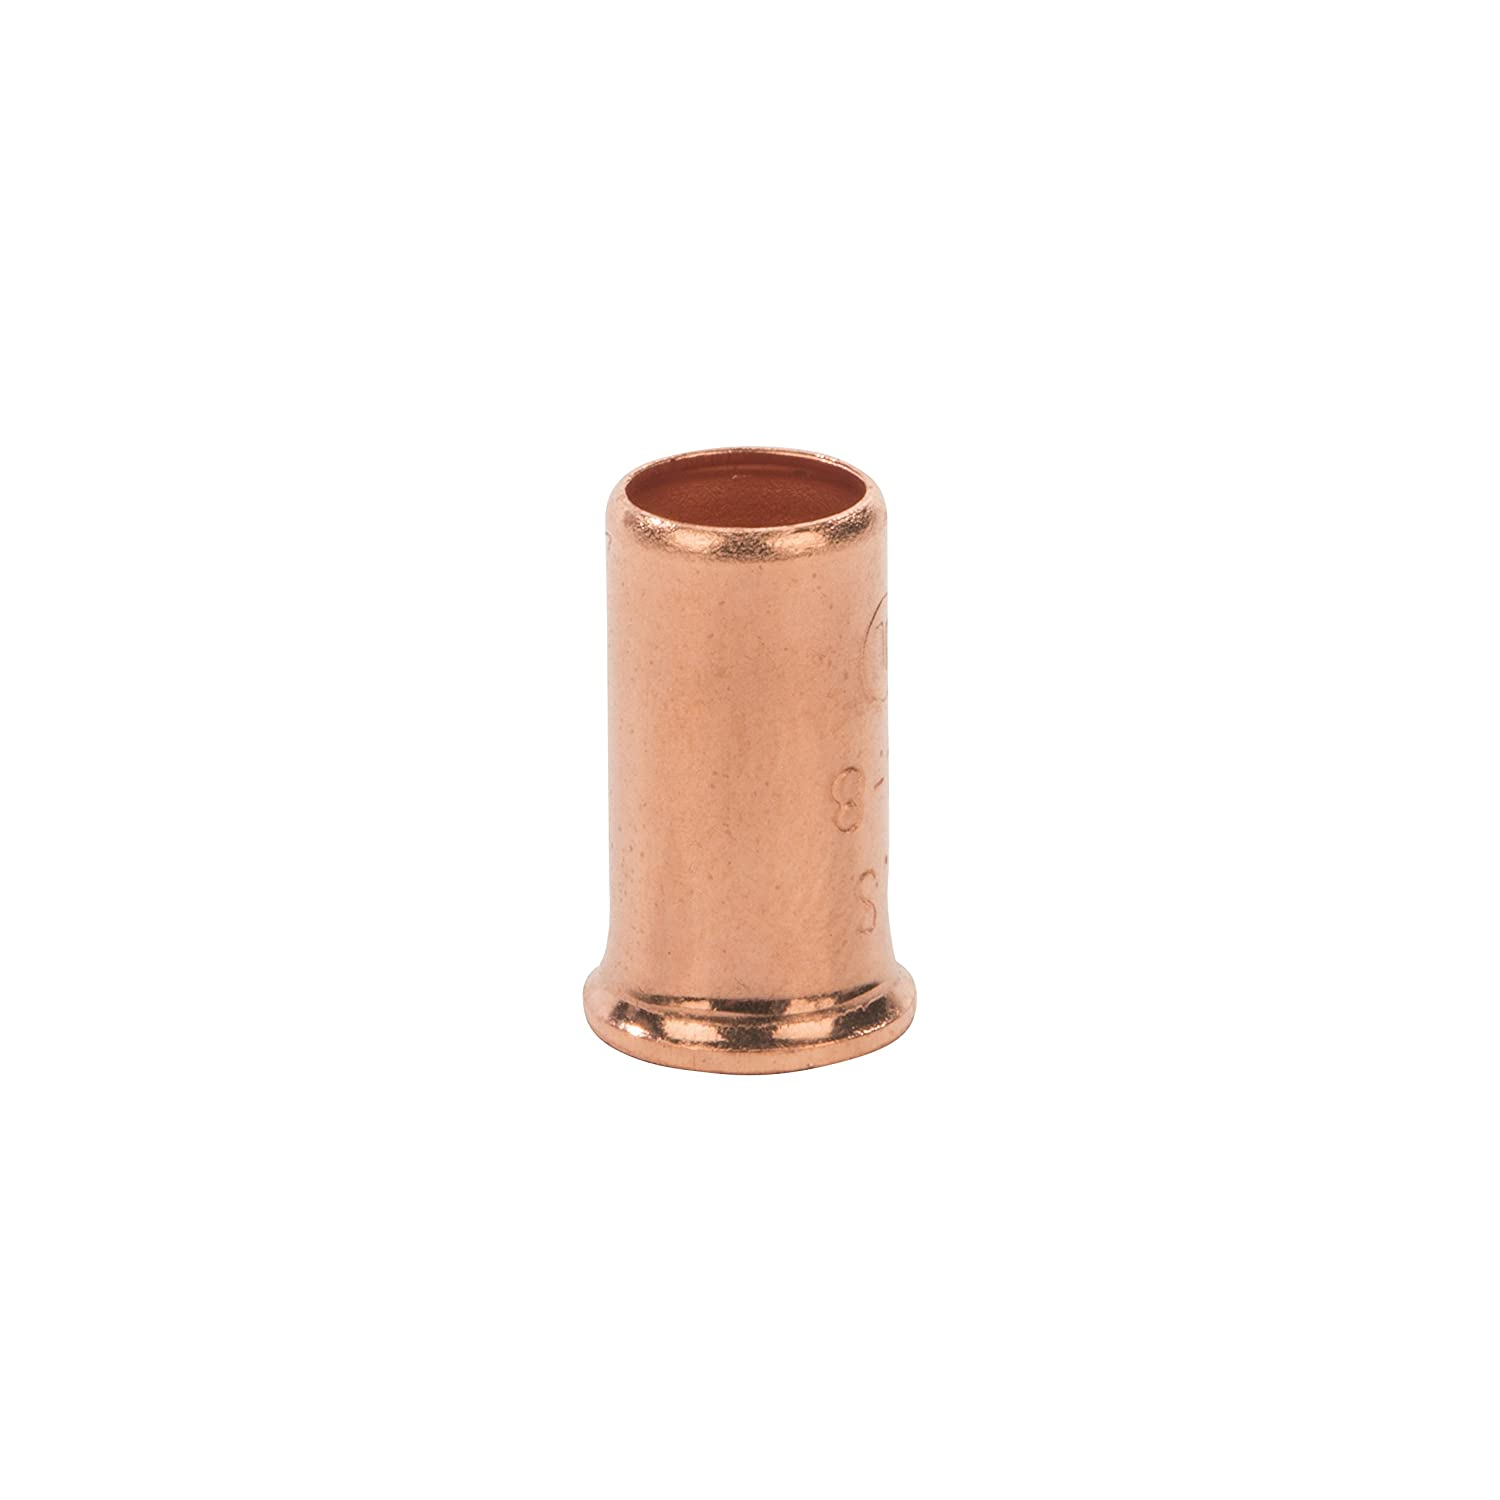 Blister Box of 100 18-8 AWG Wire Range Easy-Twist Copper Crimp Sleeve Wire Connector